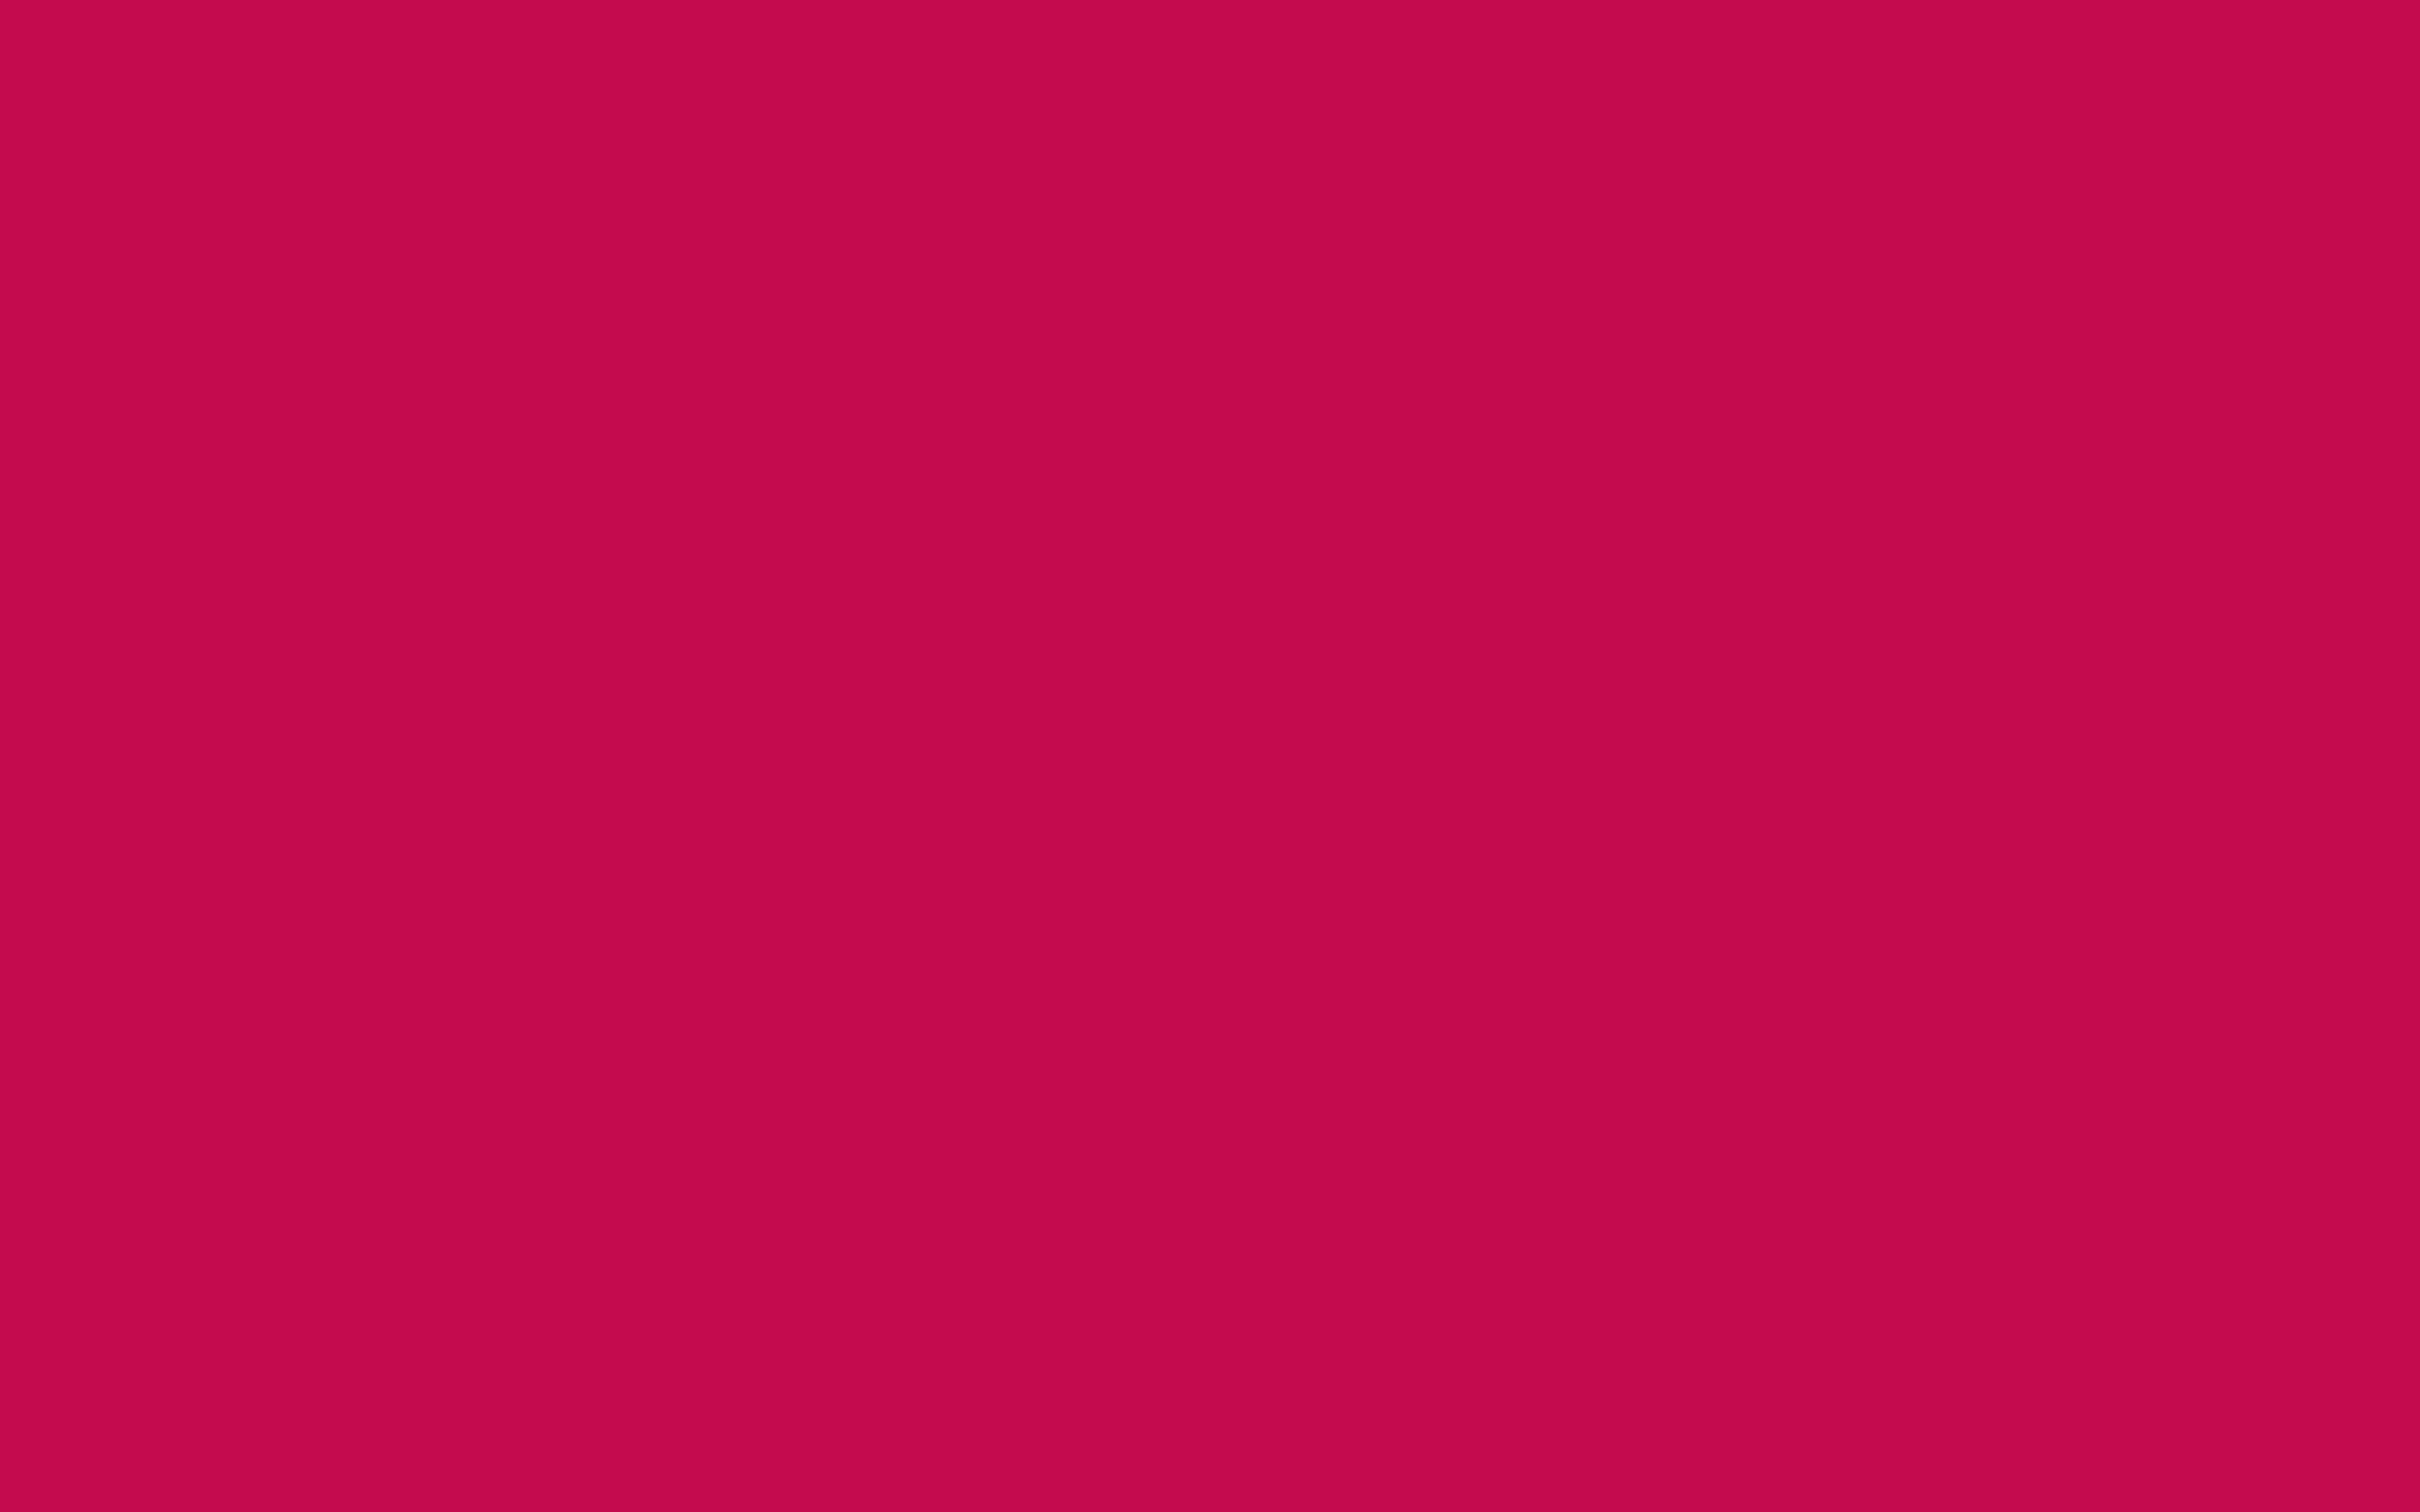 2560x1600 Pictorial Carmine Solid Color Background